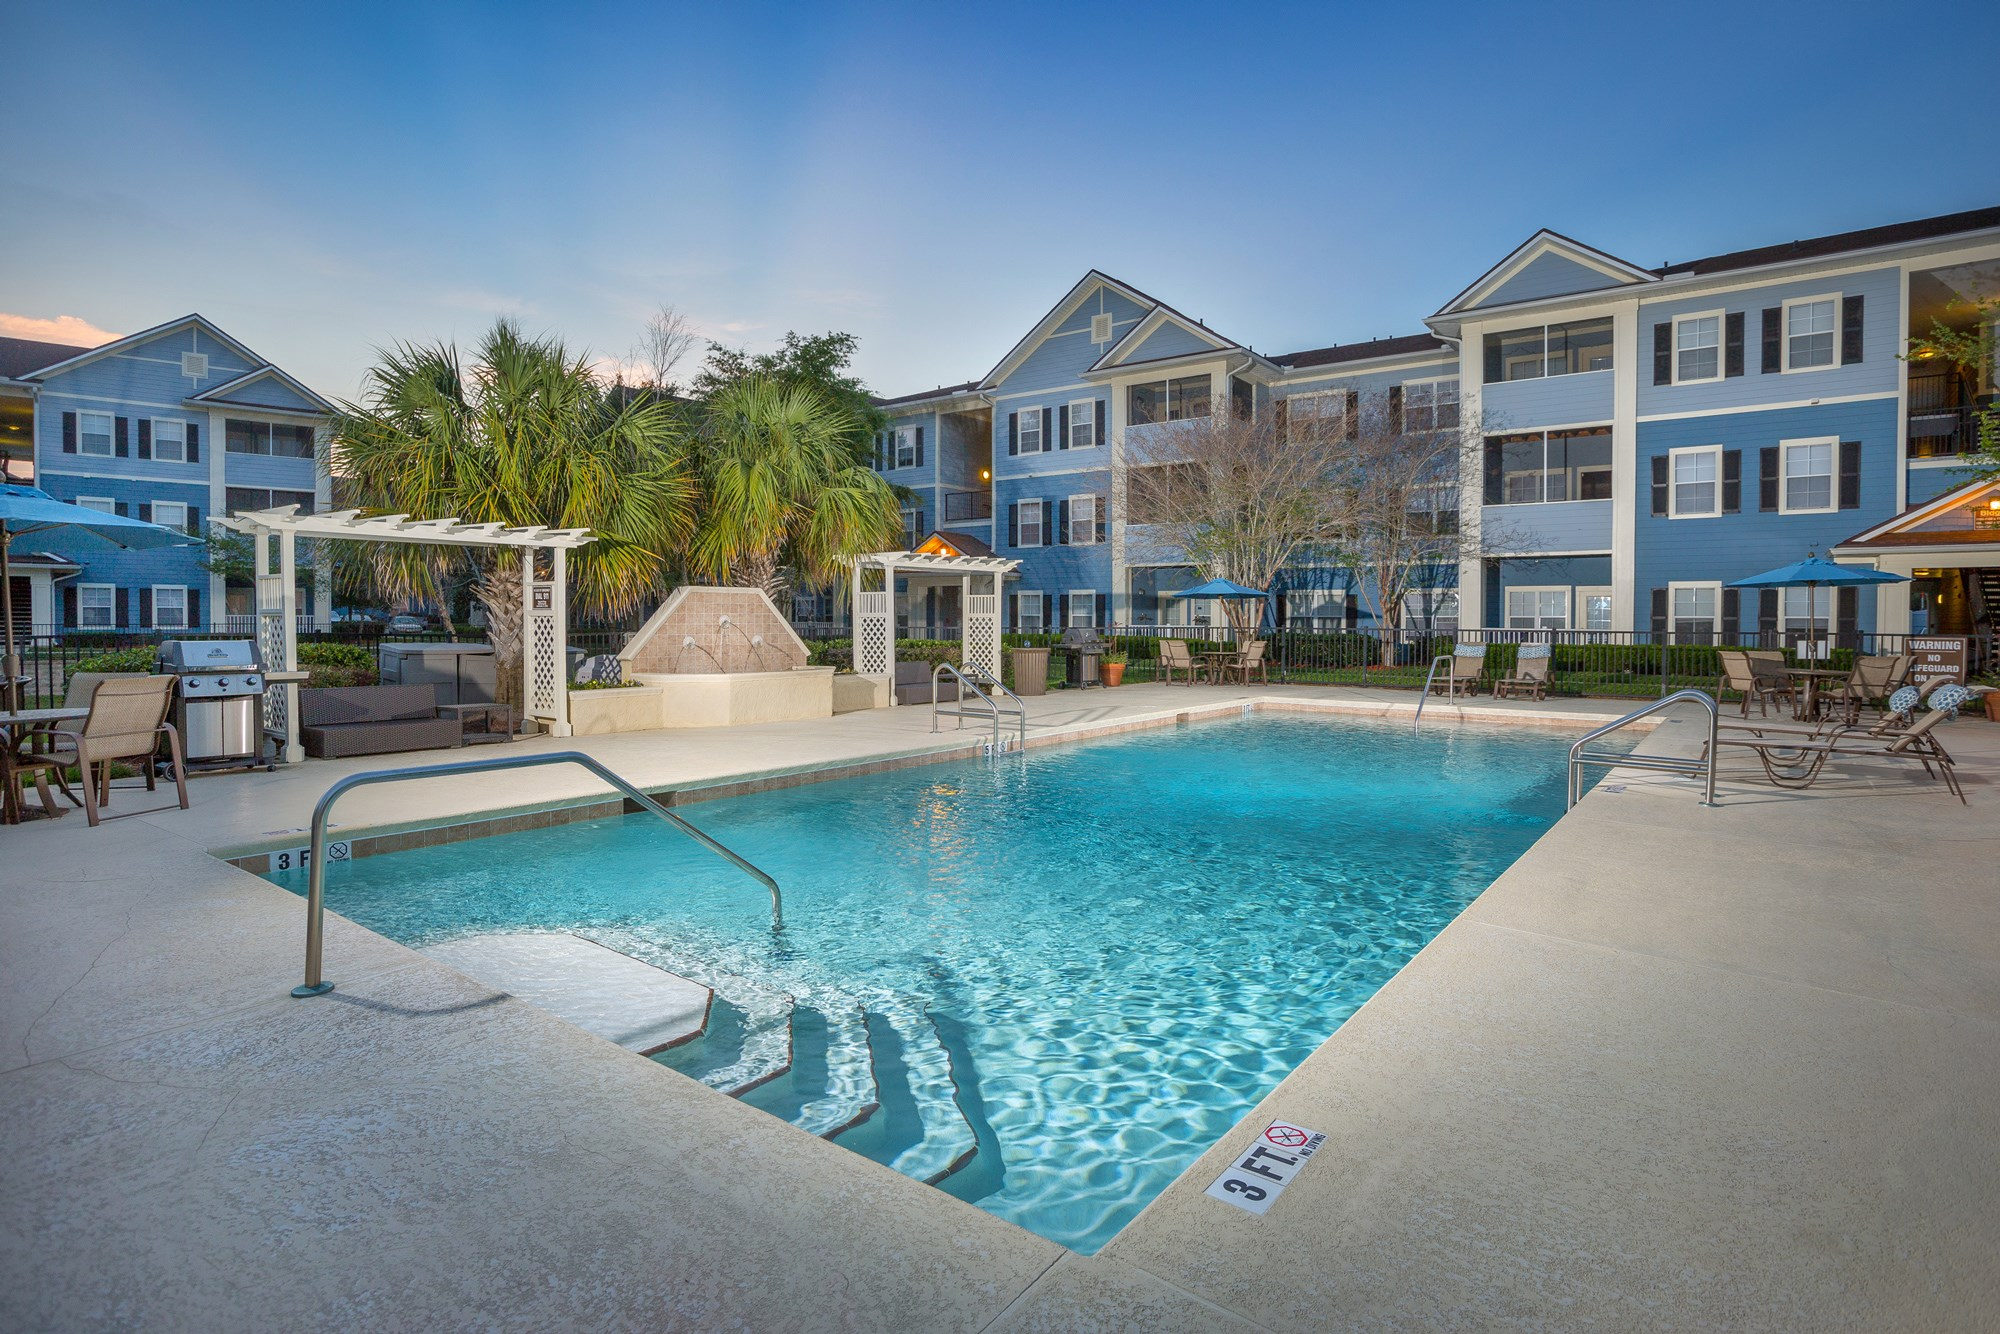 Swimming Pool at Magnolia Village Apartments in Jacksonville, FL